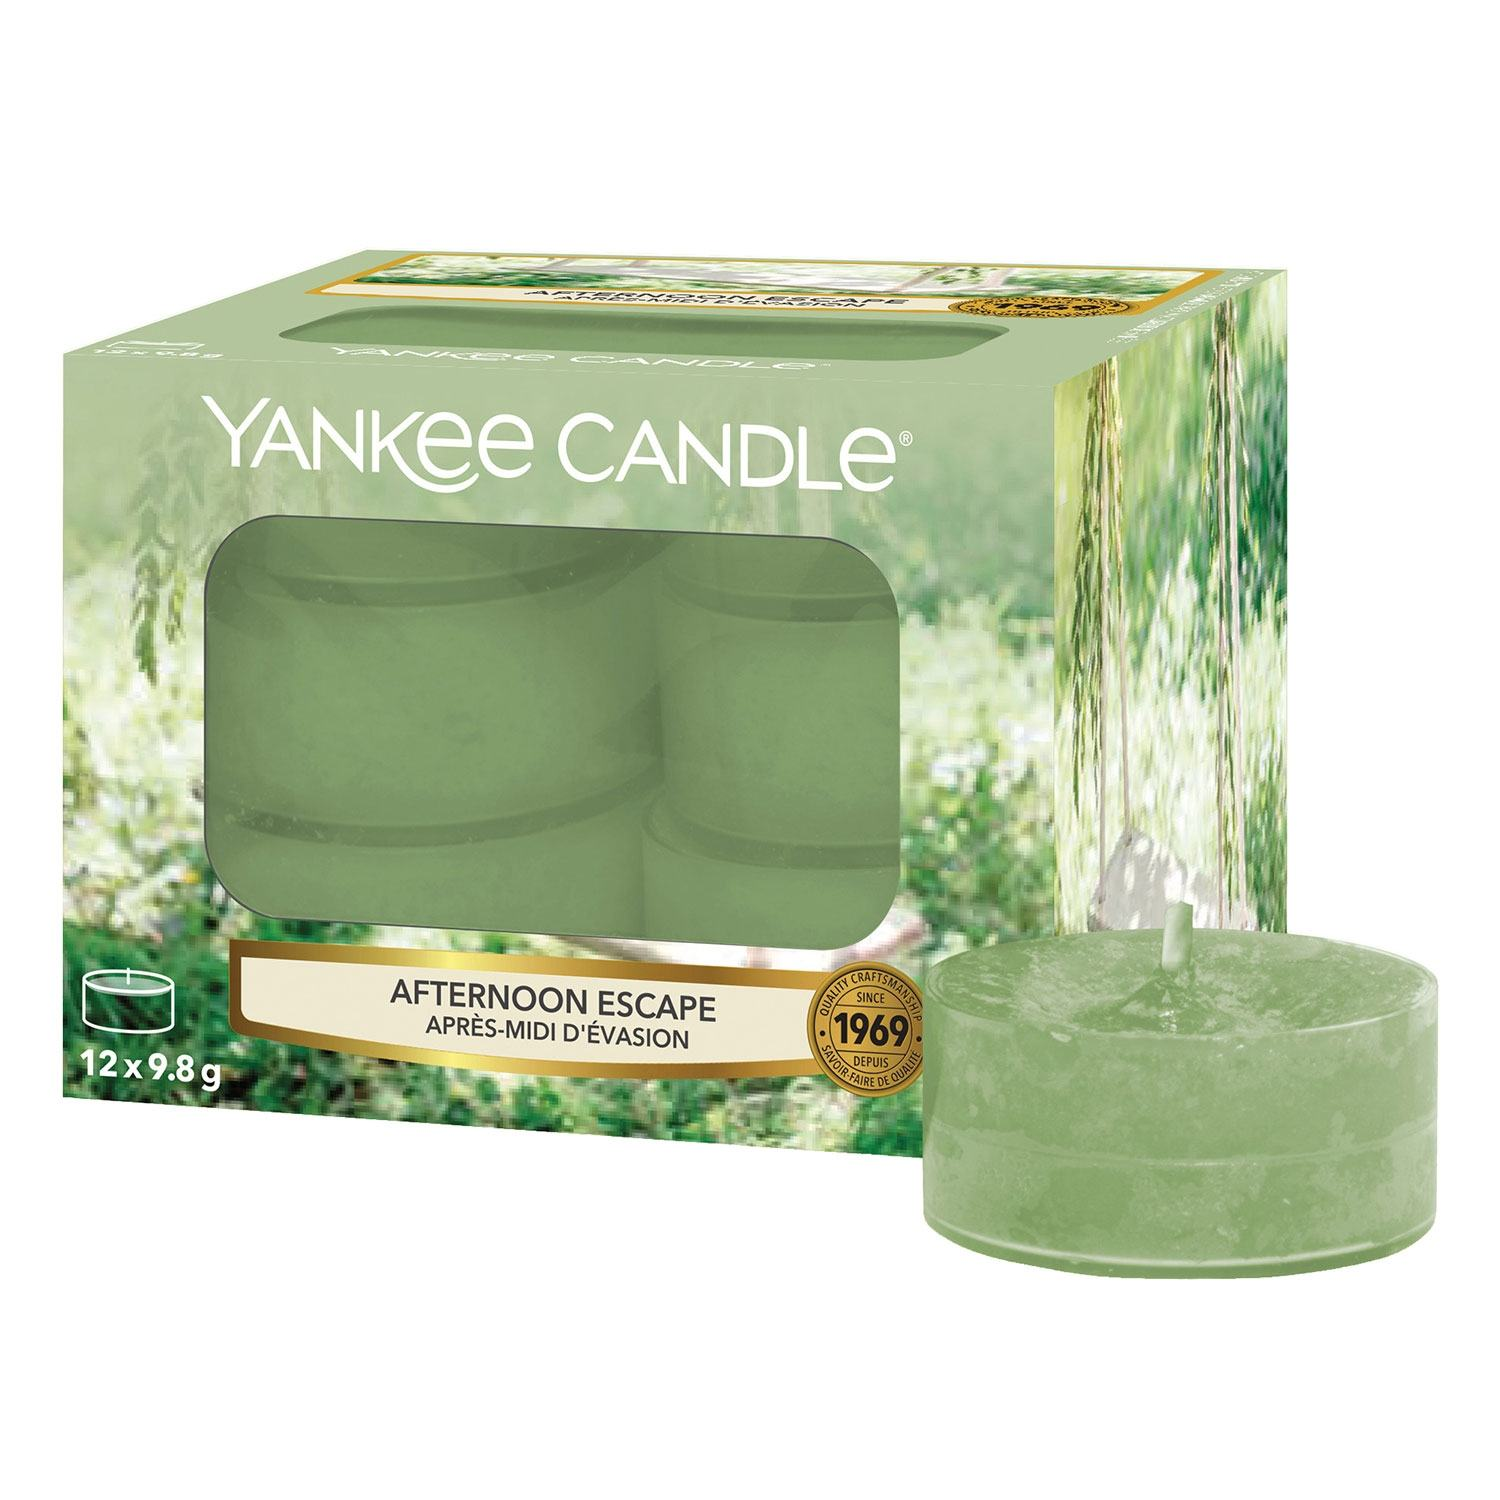 Yankee Candle Afternoon Escape Pack of 12 Tealights